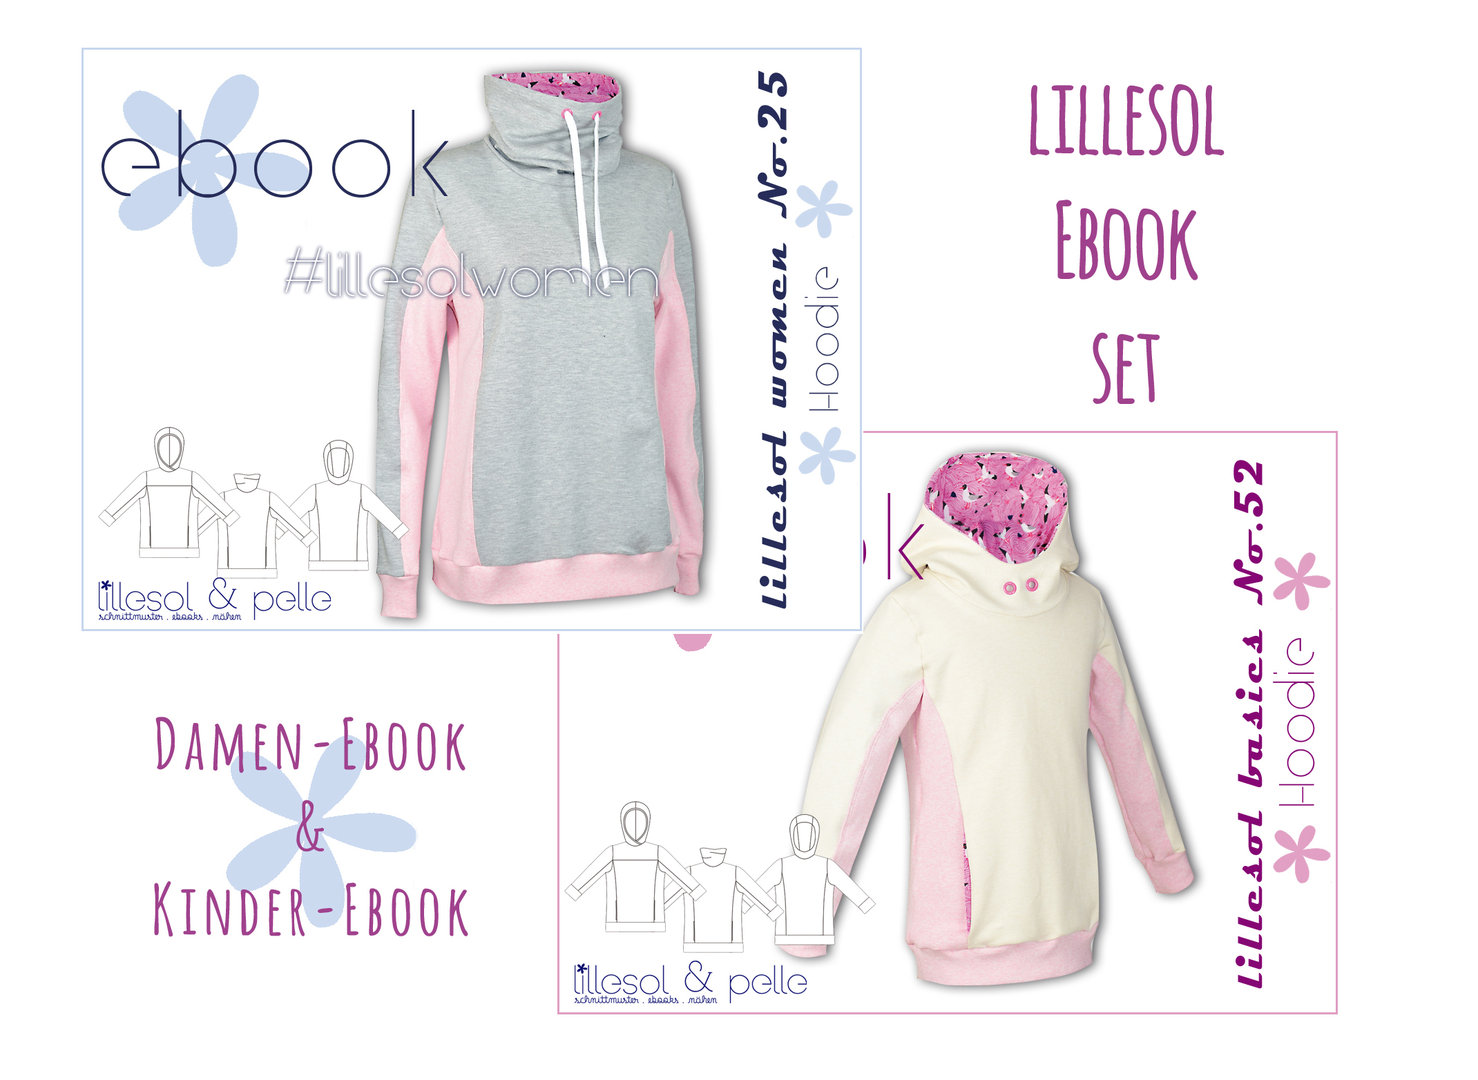 lillesol ebook set basics No.52 und women No.25